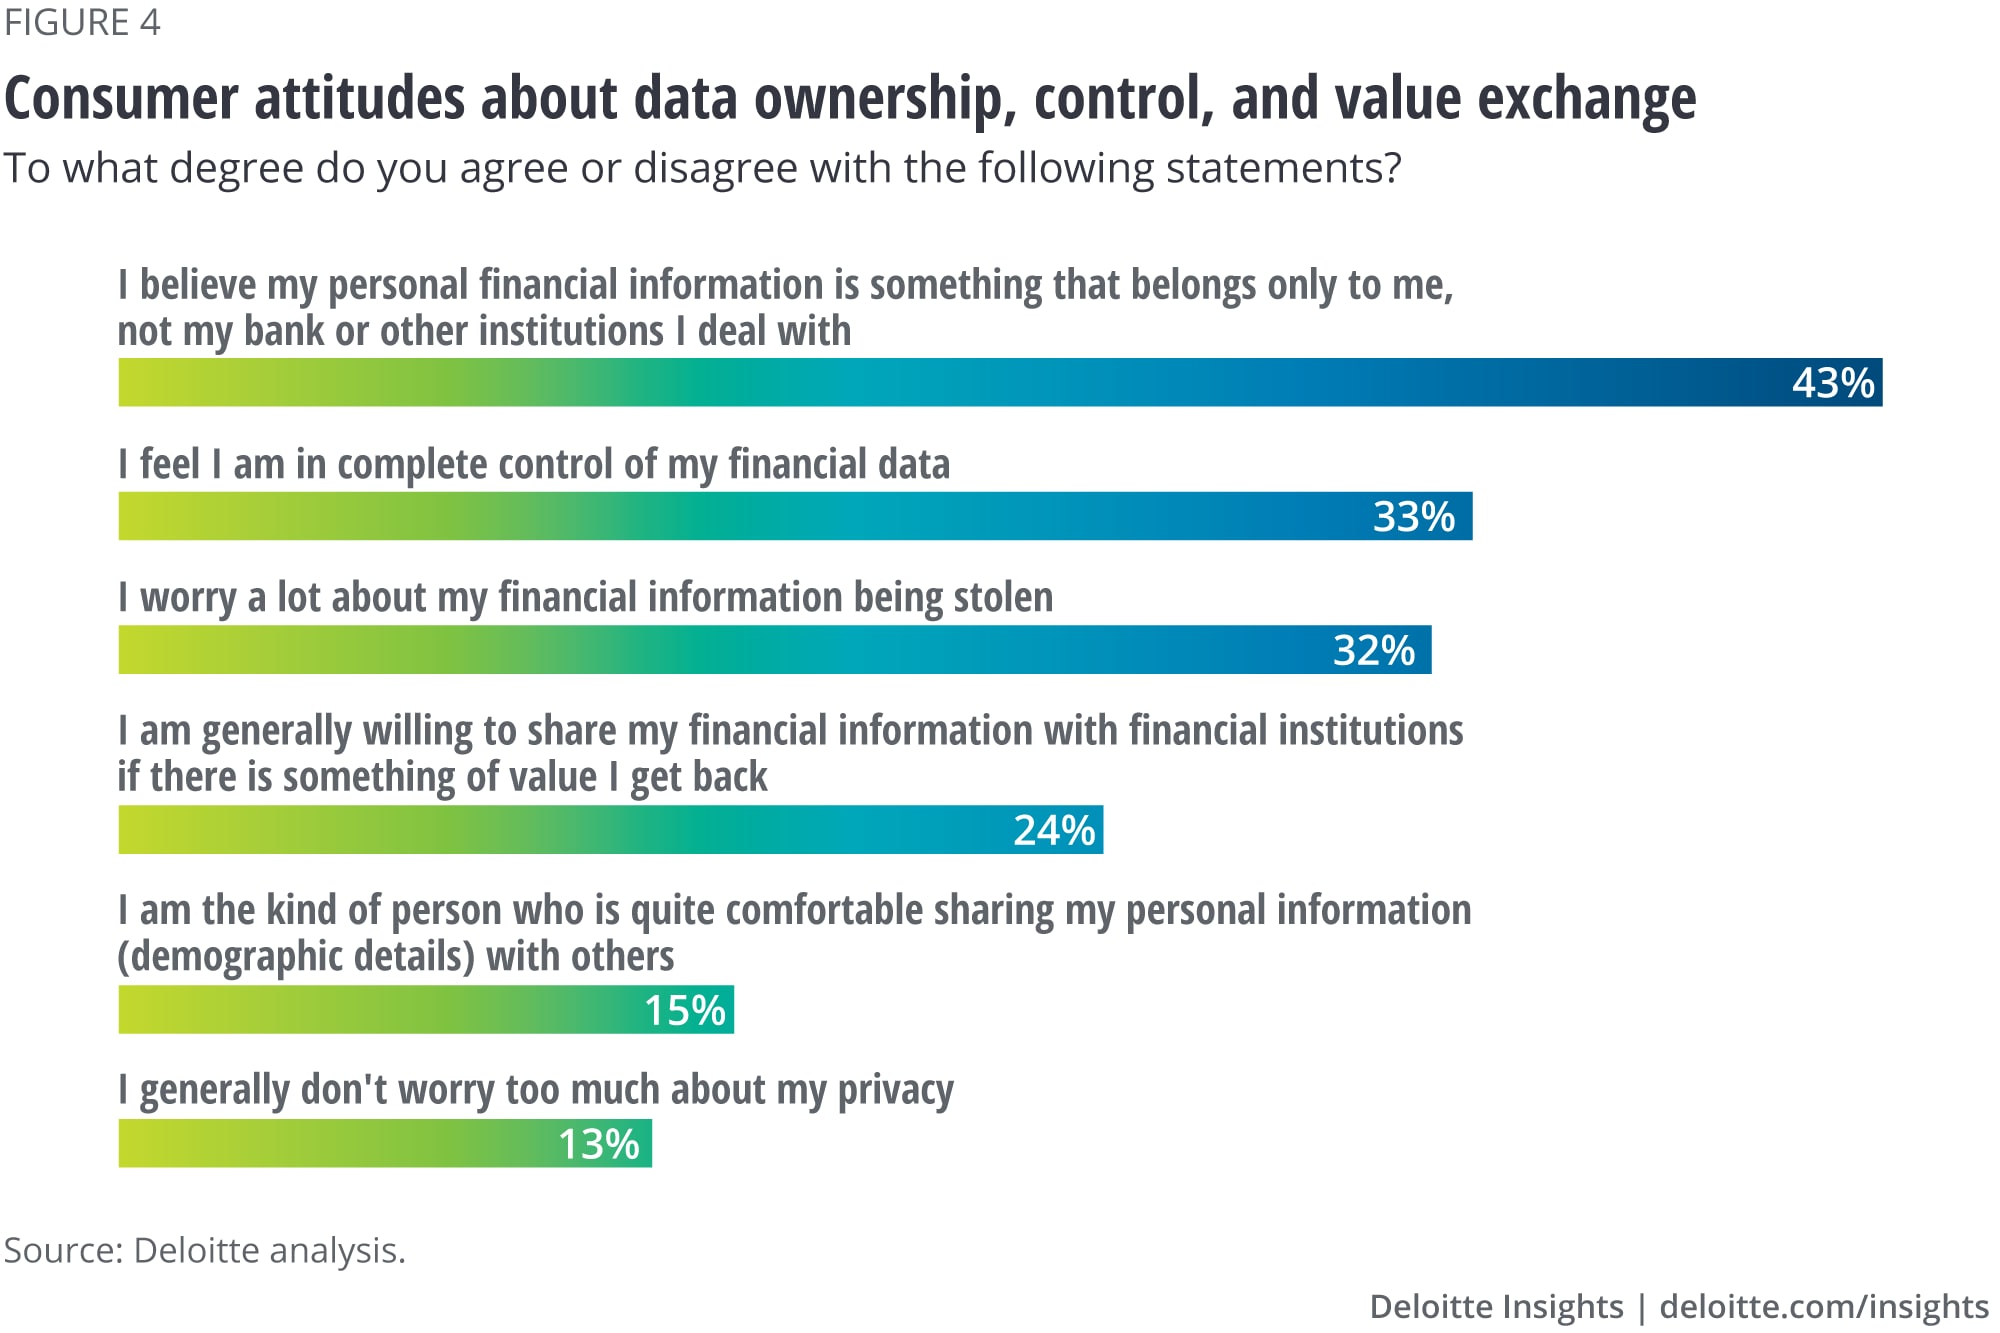 Consumer attitudes about data ownership, control, and value exchange